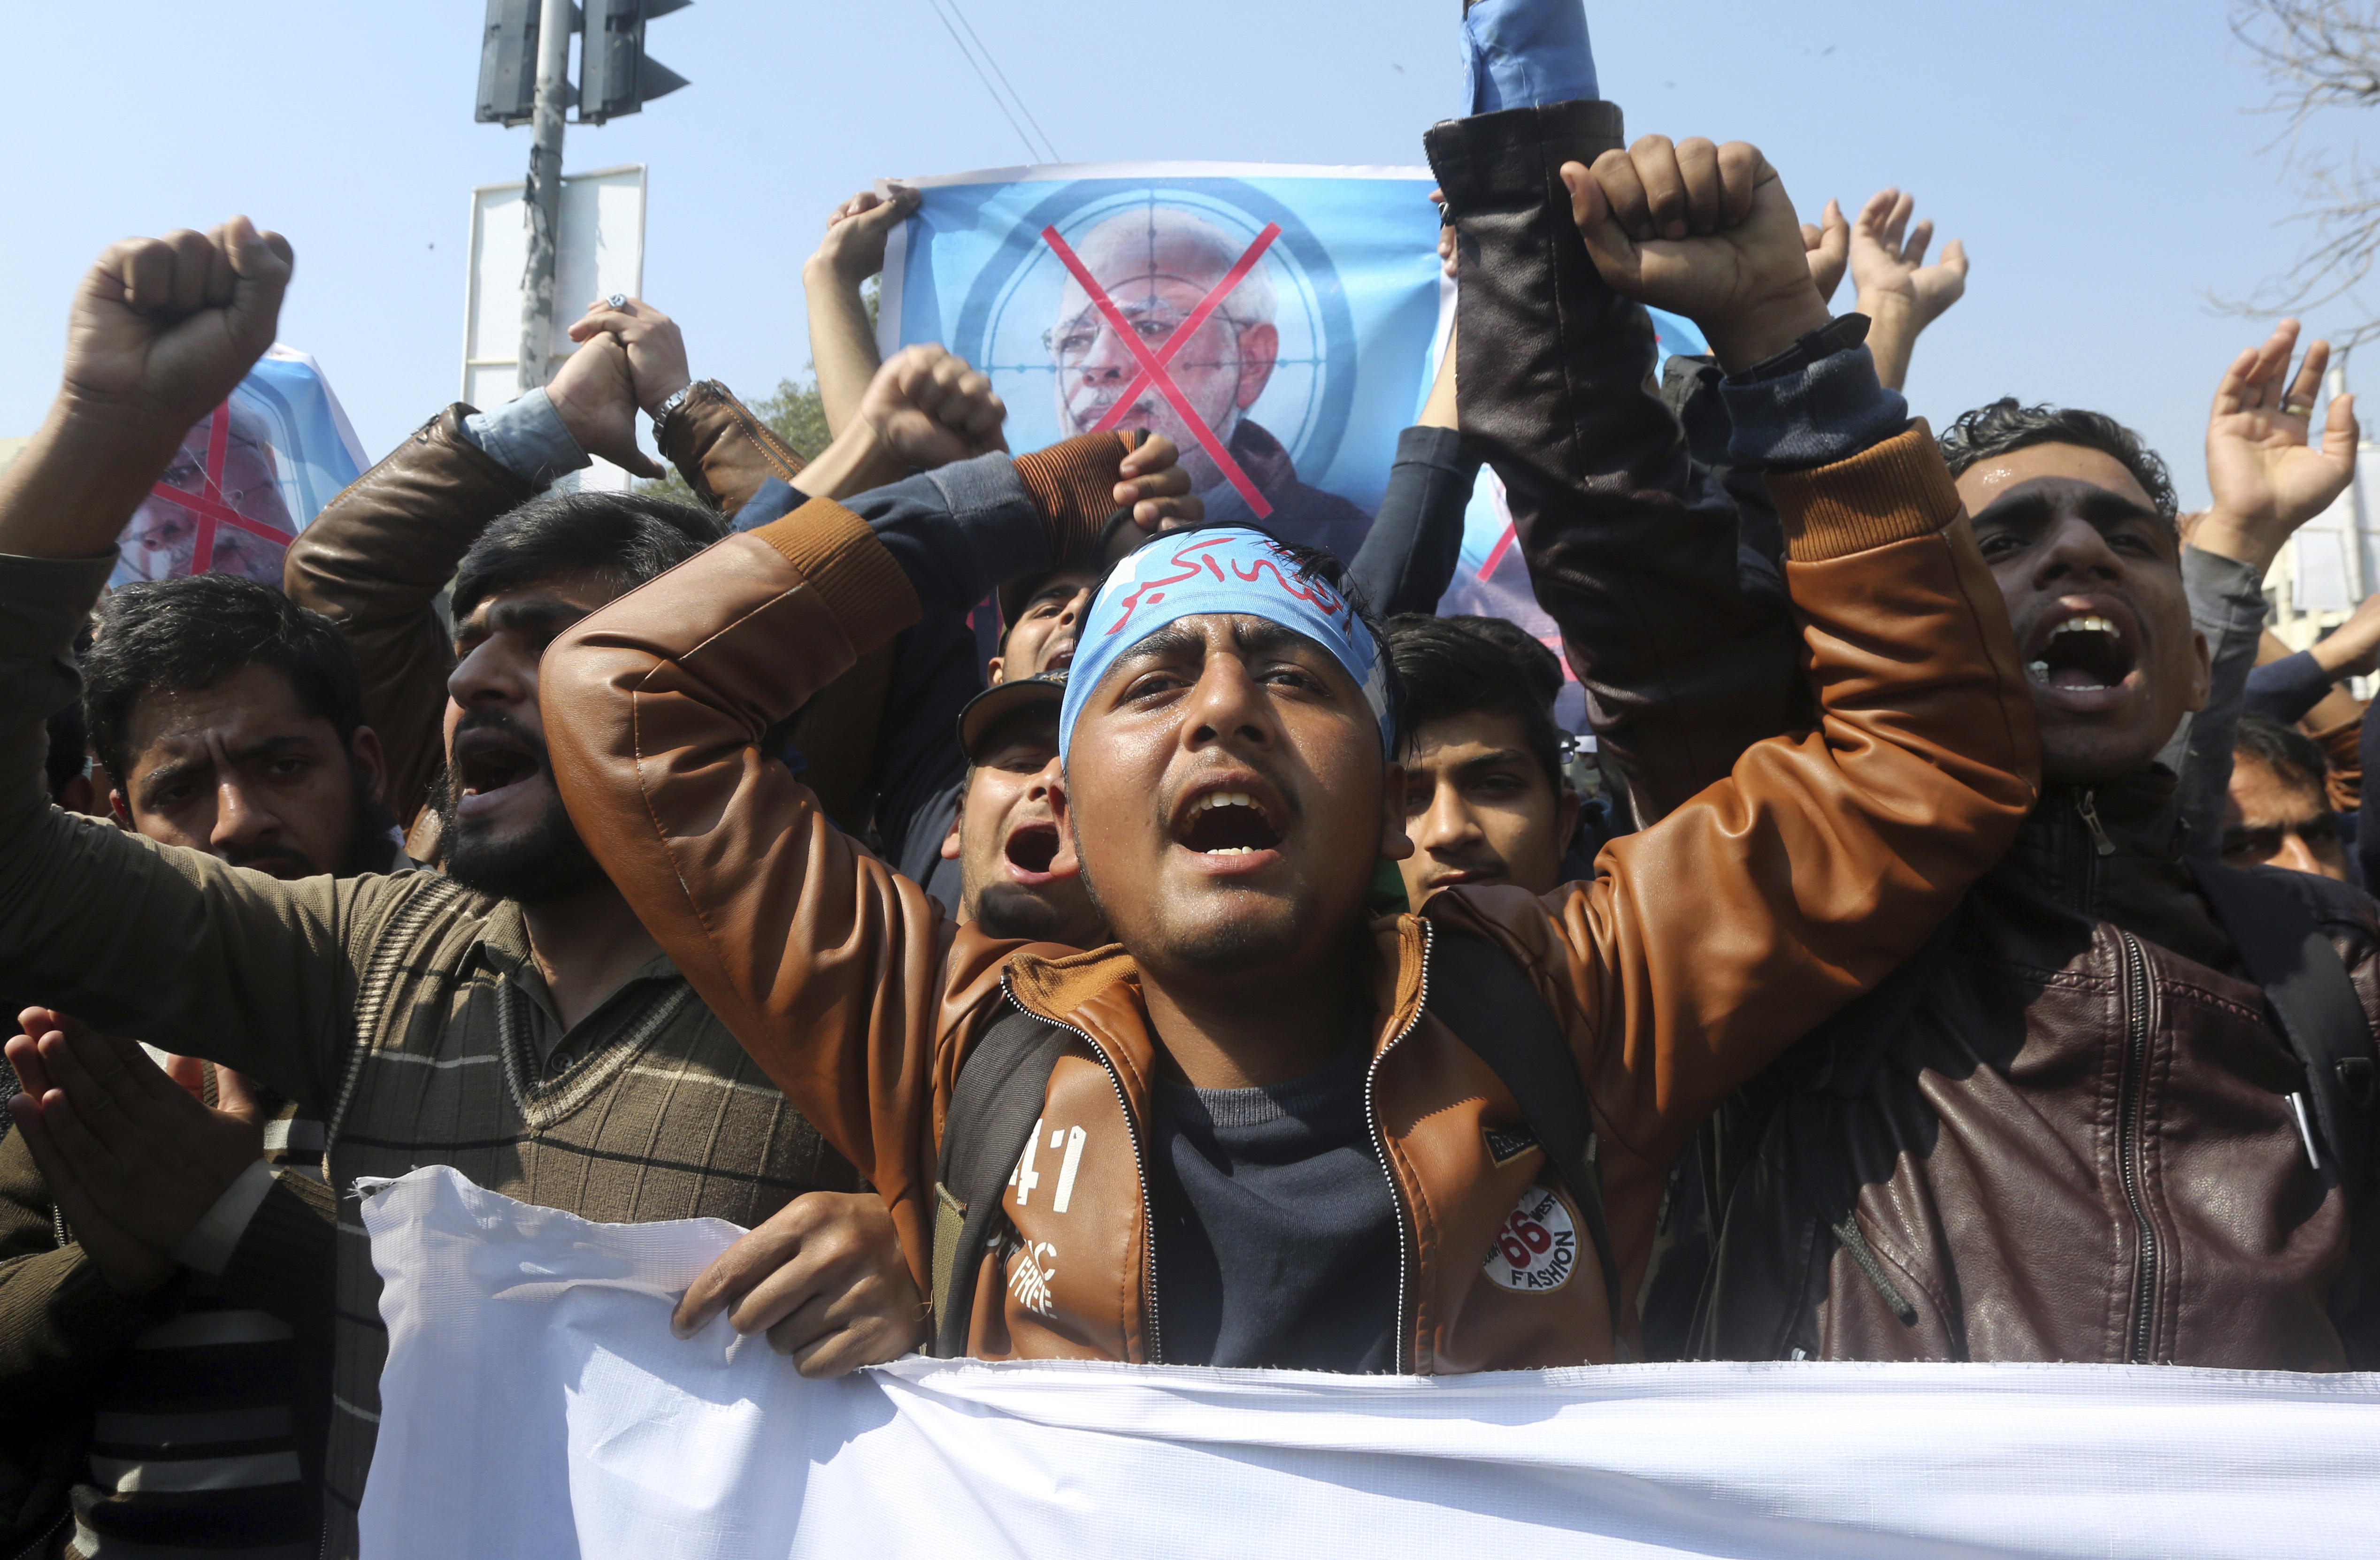 Supporters of a Pakistani religious group Islami Jamiat-e-Talaba chant slogans at a rally against India, Wednesday, Feb. 27, 2019. Pakistan's air force shot down two Indian warplanes after they crossed the boundary between the two nuclear-armed rivals in the disputed territory of Kashmir on Wednesday and captured one Indian pilot, a military spokesman said. (AP Photo/K.M. Chaudary)